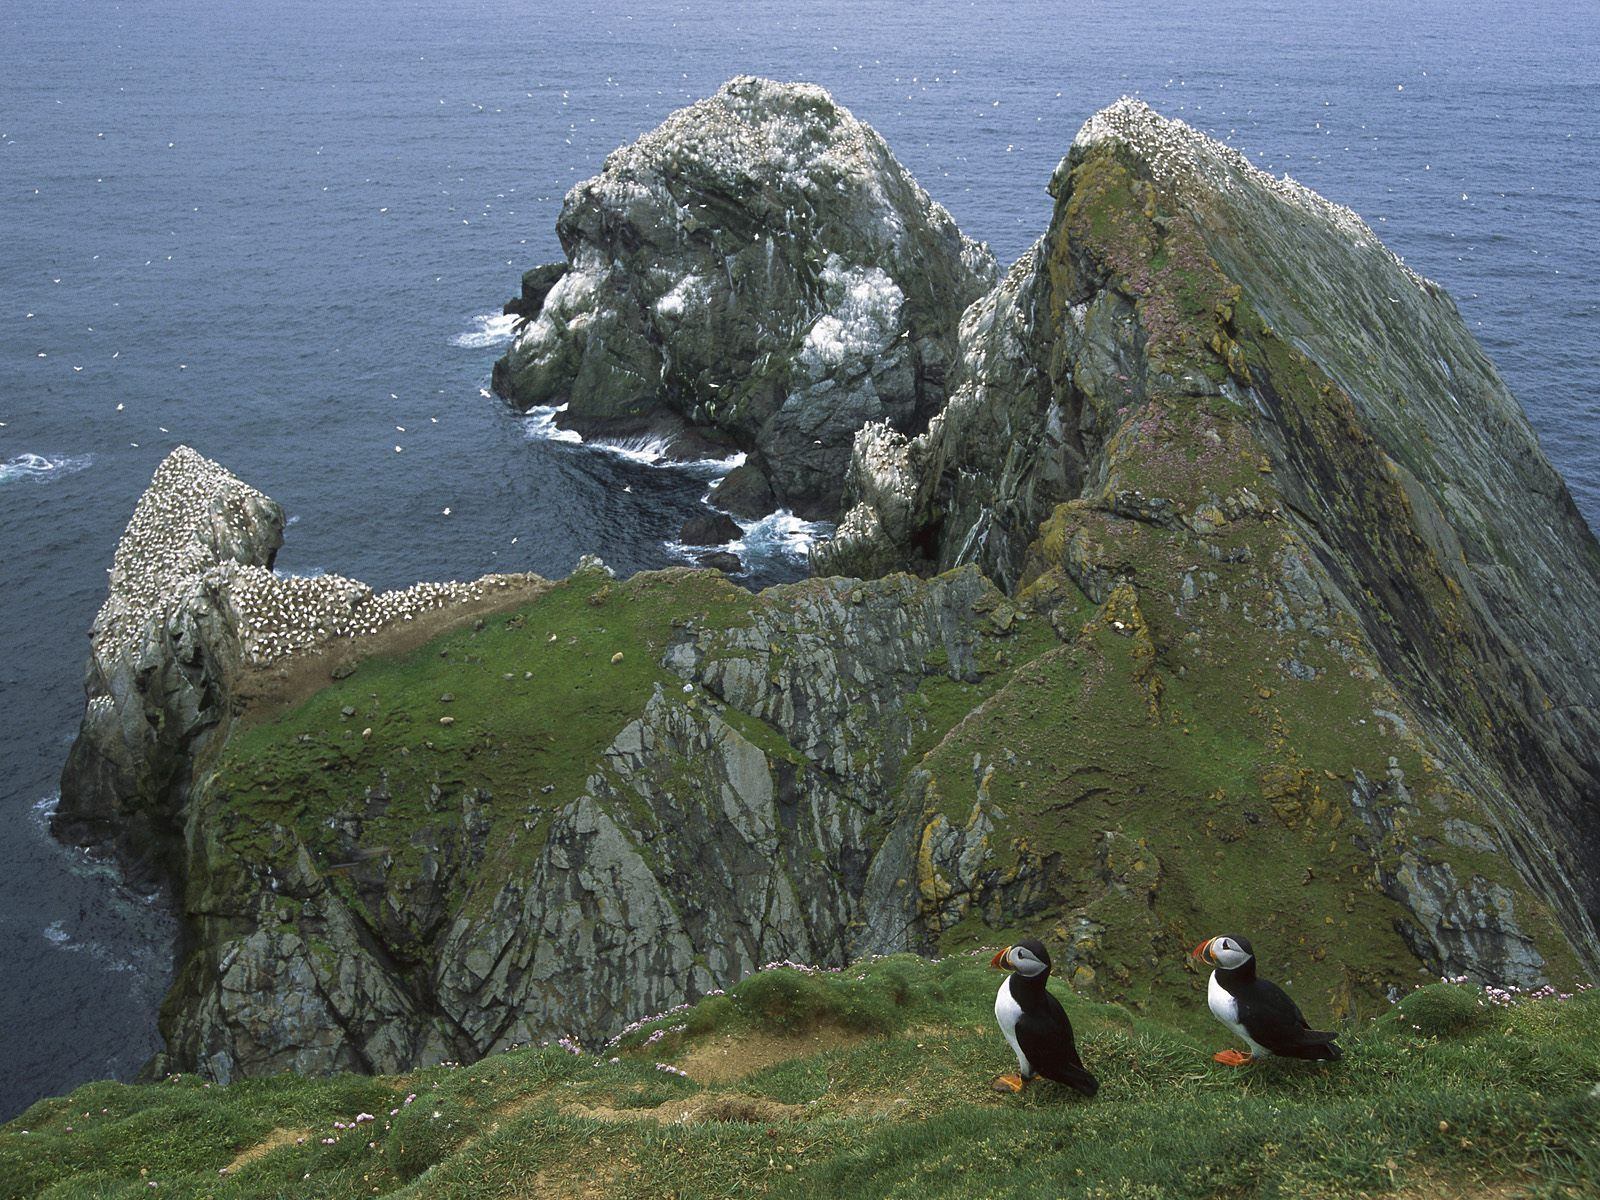 118454 download wallpaper Nature, Shore, Bank, Rocks, Ocean, Pinguins, Seagulls screensavers and pictures for free